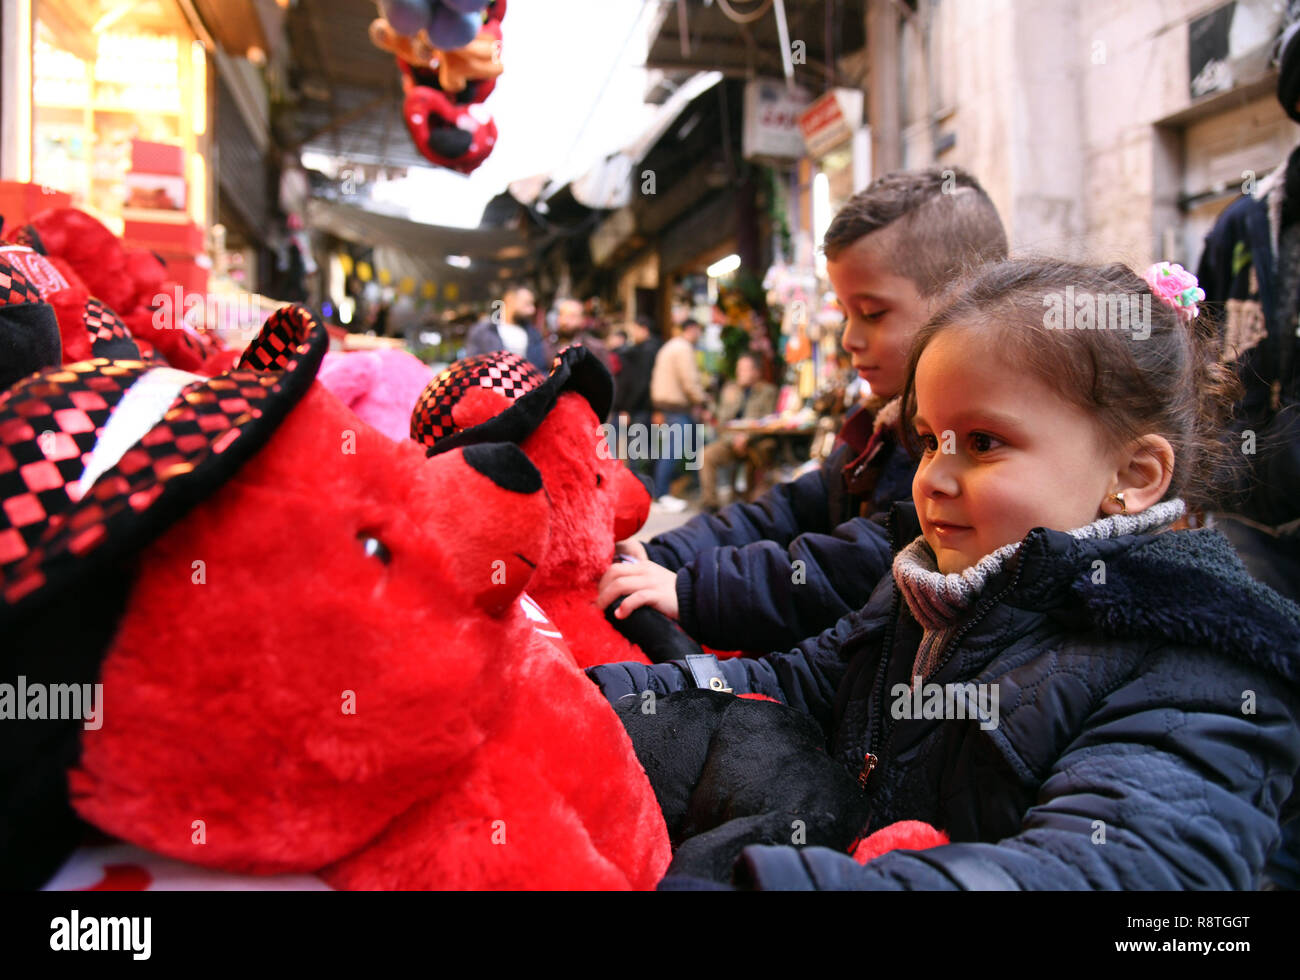 Damascus, Syria. 17th Dec, 2018. Syrian children look at toy bears at a marketplace in the old city of Damascus, capital of Syria, on Dec. 17, 2018. As Christmas and the New Year approach, Syrians in Damascus shopped for gifts, candies and decorations at marketplaces. Credit: Ammar Safarjalani/Xinhua/Alamy Live News - Stock Image